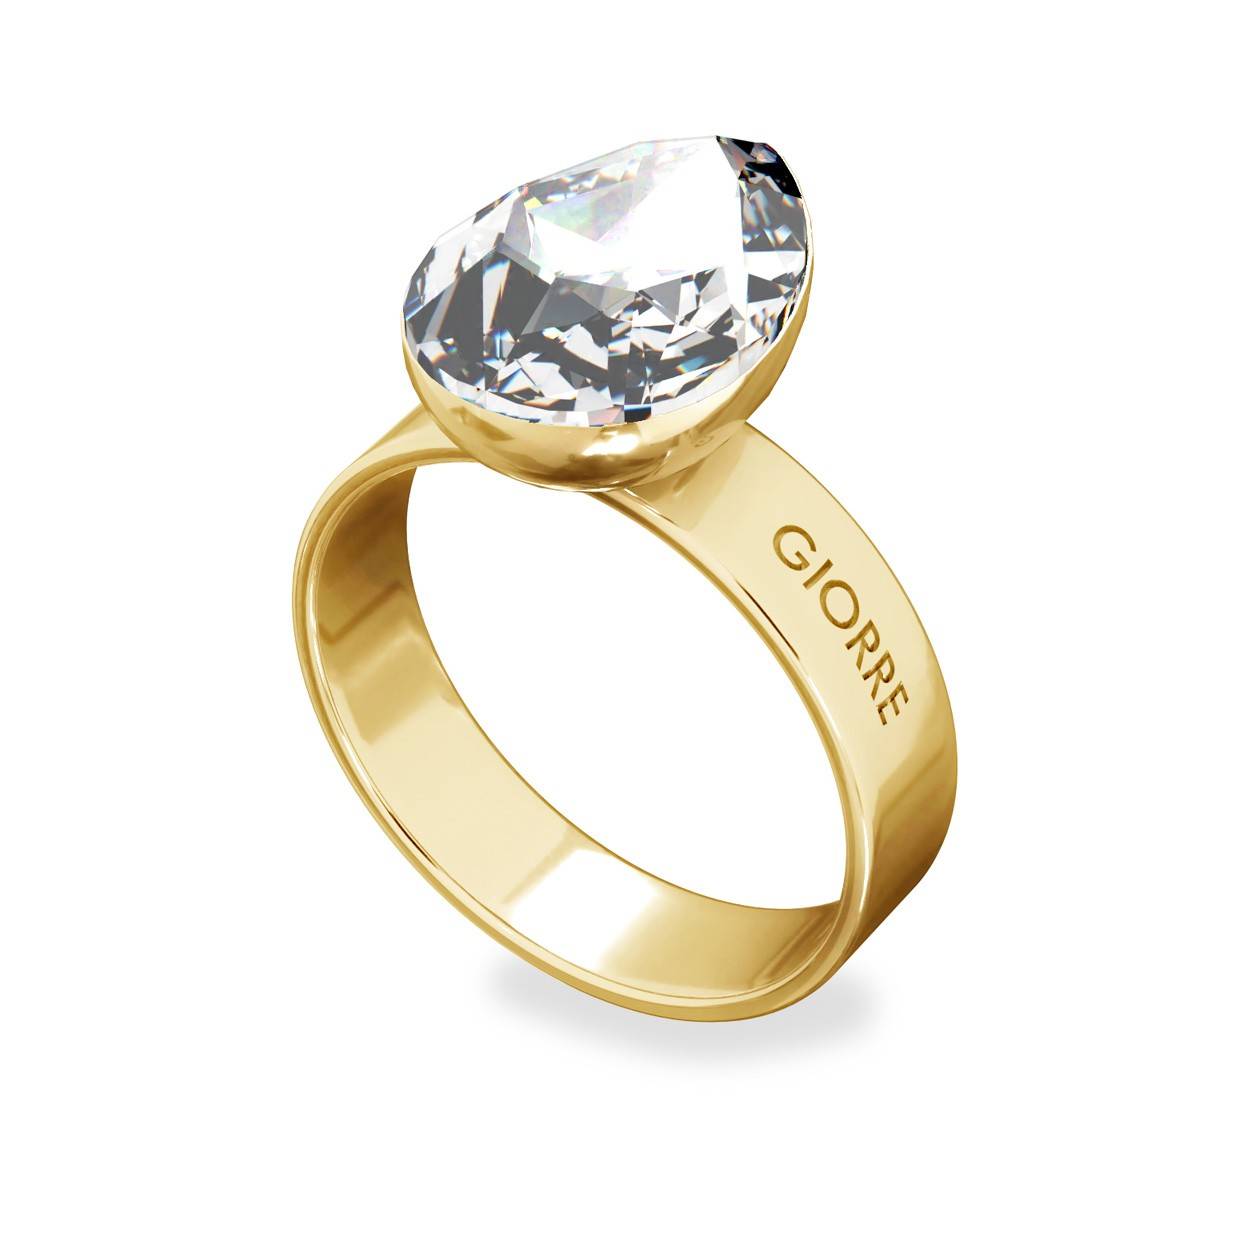 Crystal pearl ring, sterling silver 925